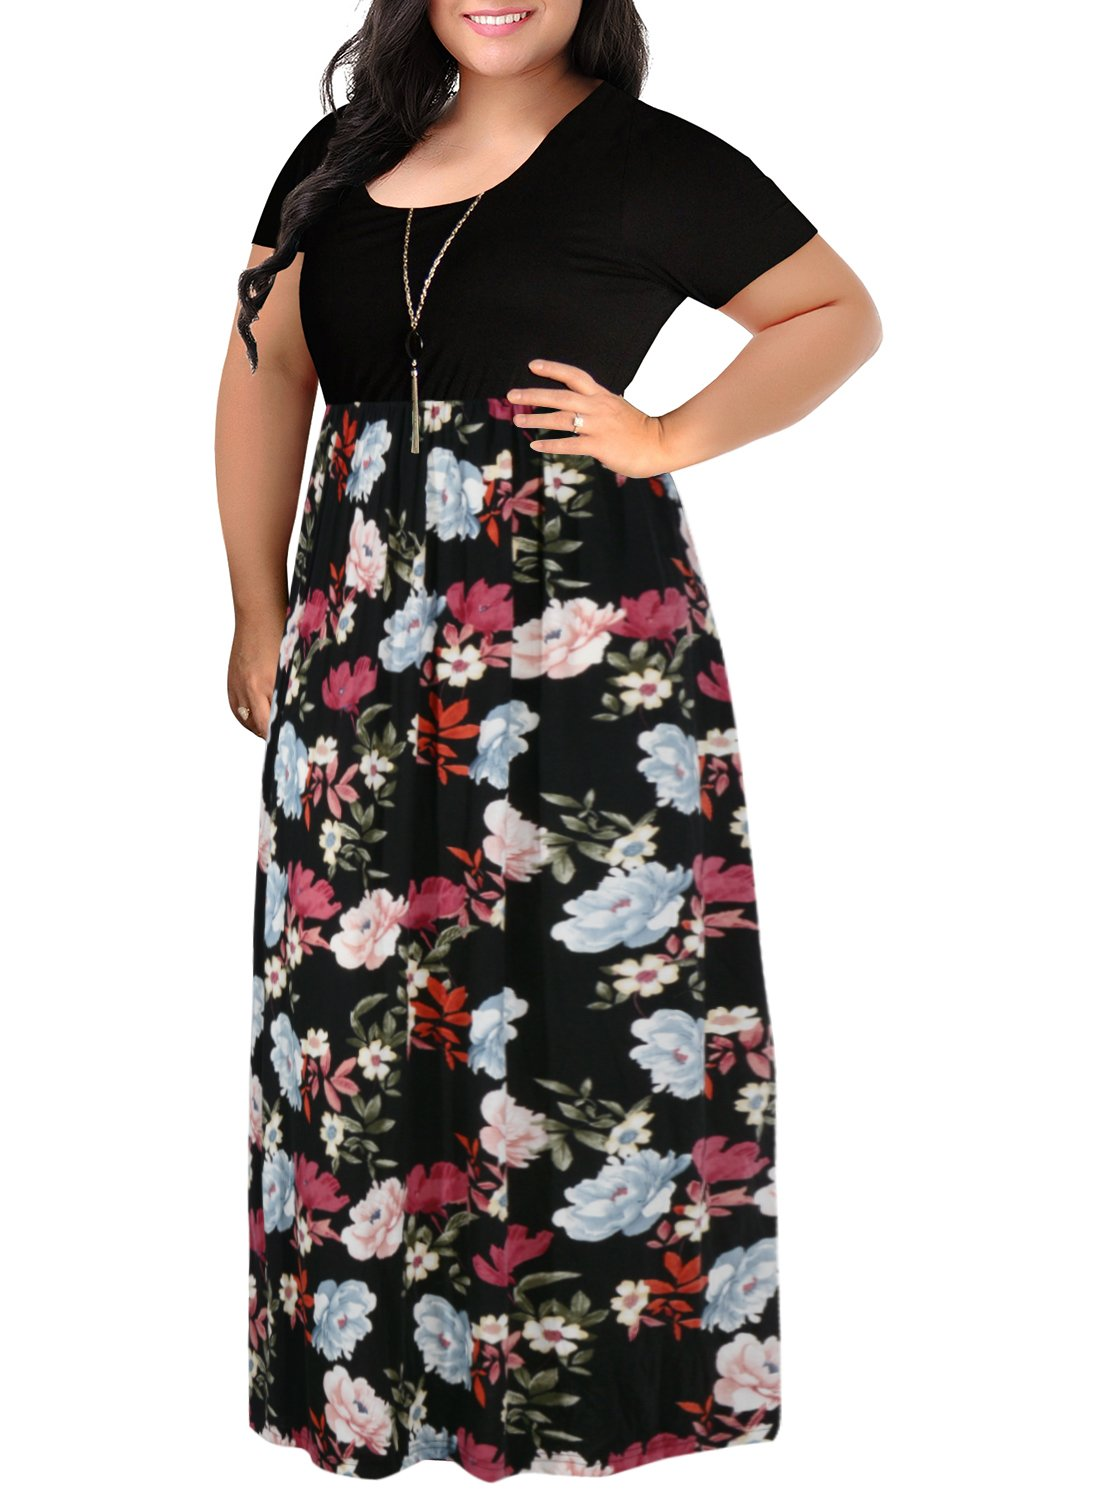 Nemidor Women's Chevron Print Summer Short Sleeve Plus Size Casual Maxi Dress (26W, Black Peony)